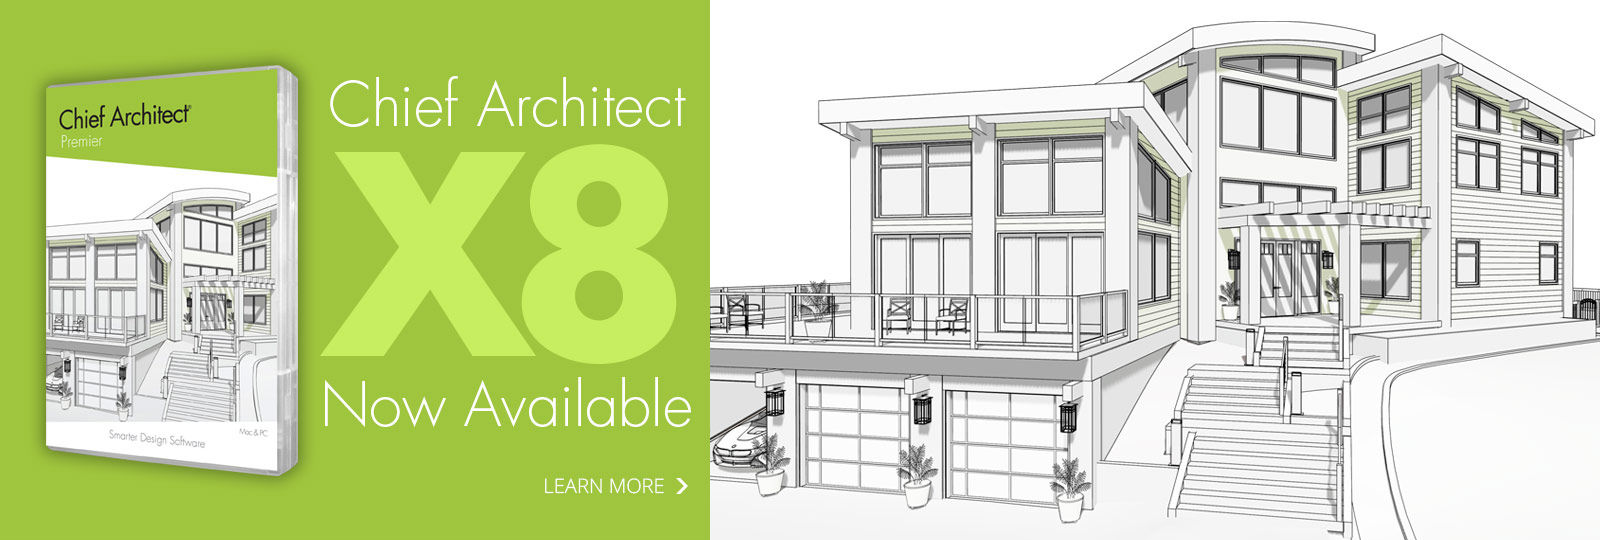 chief architect x8 available for download - Personal Home Designer